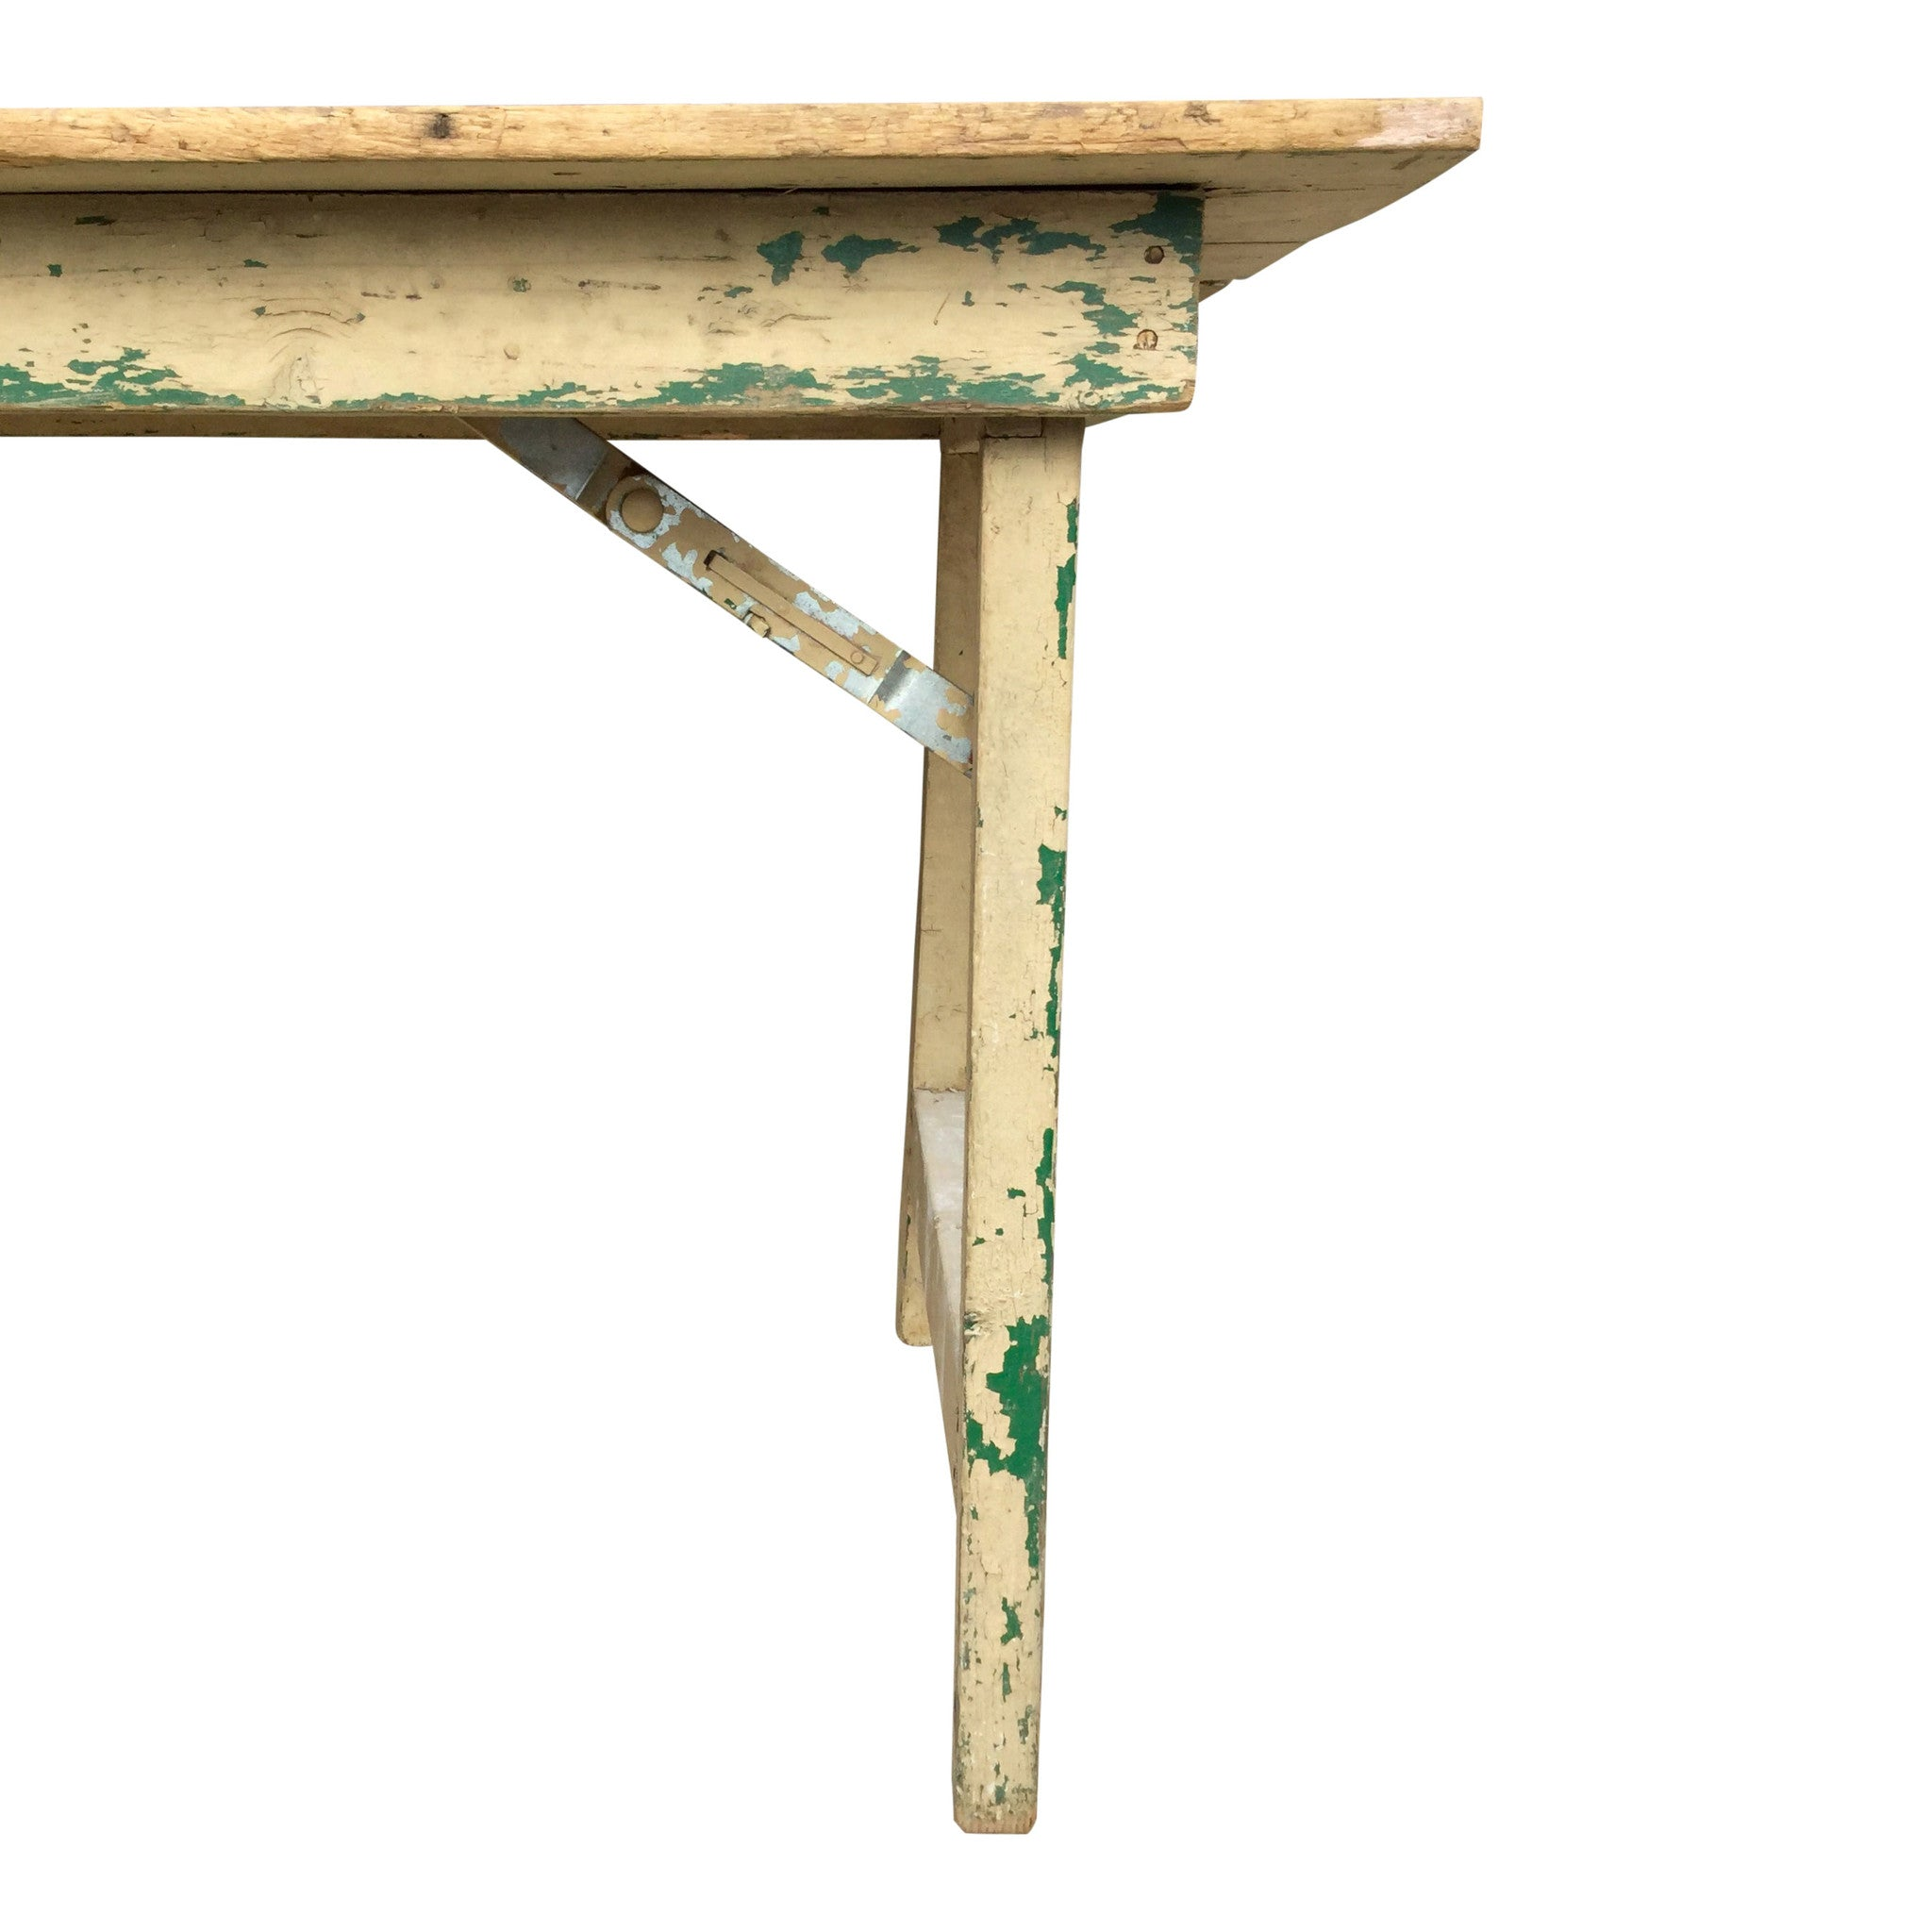 Vintage Folding Farm Table - Barefoot Dwelling